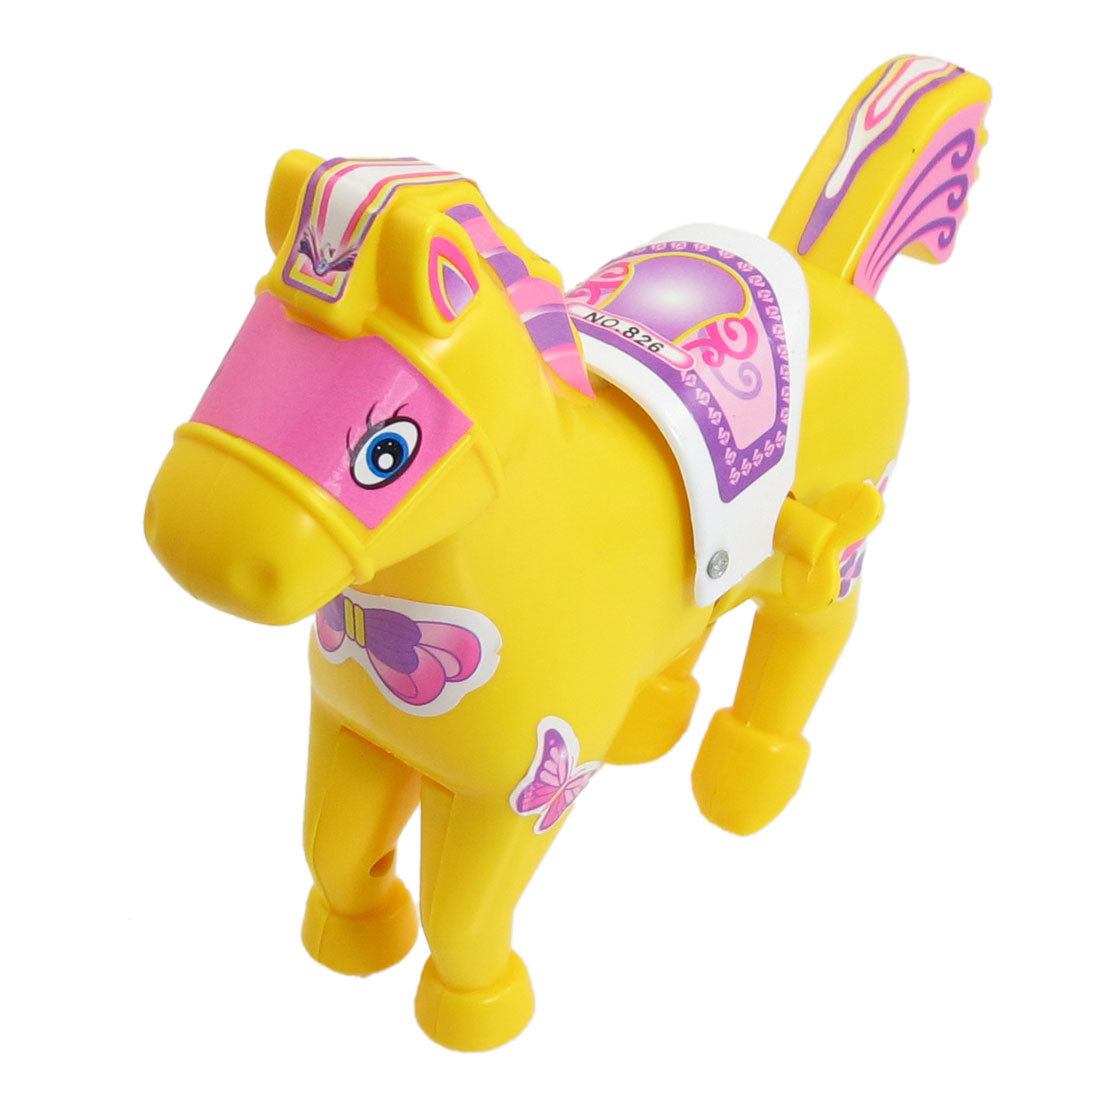 Children Yellow Plastic Cartoon Running Horse Wind up Toy